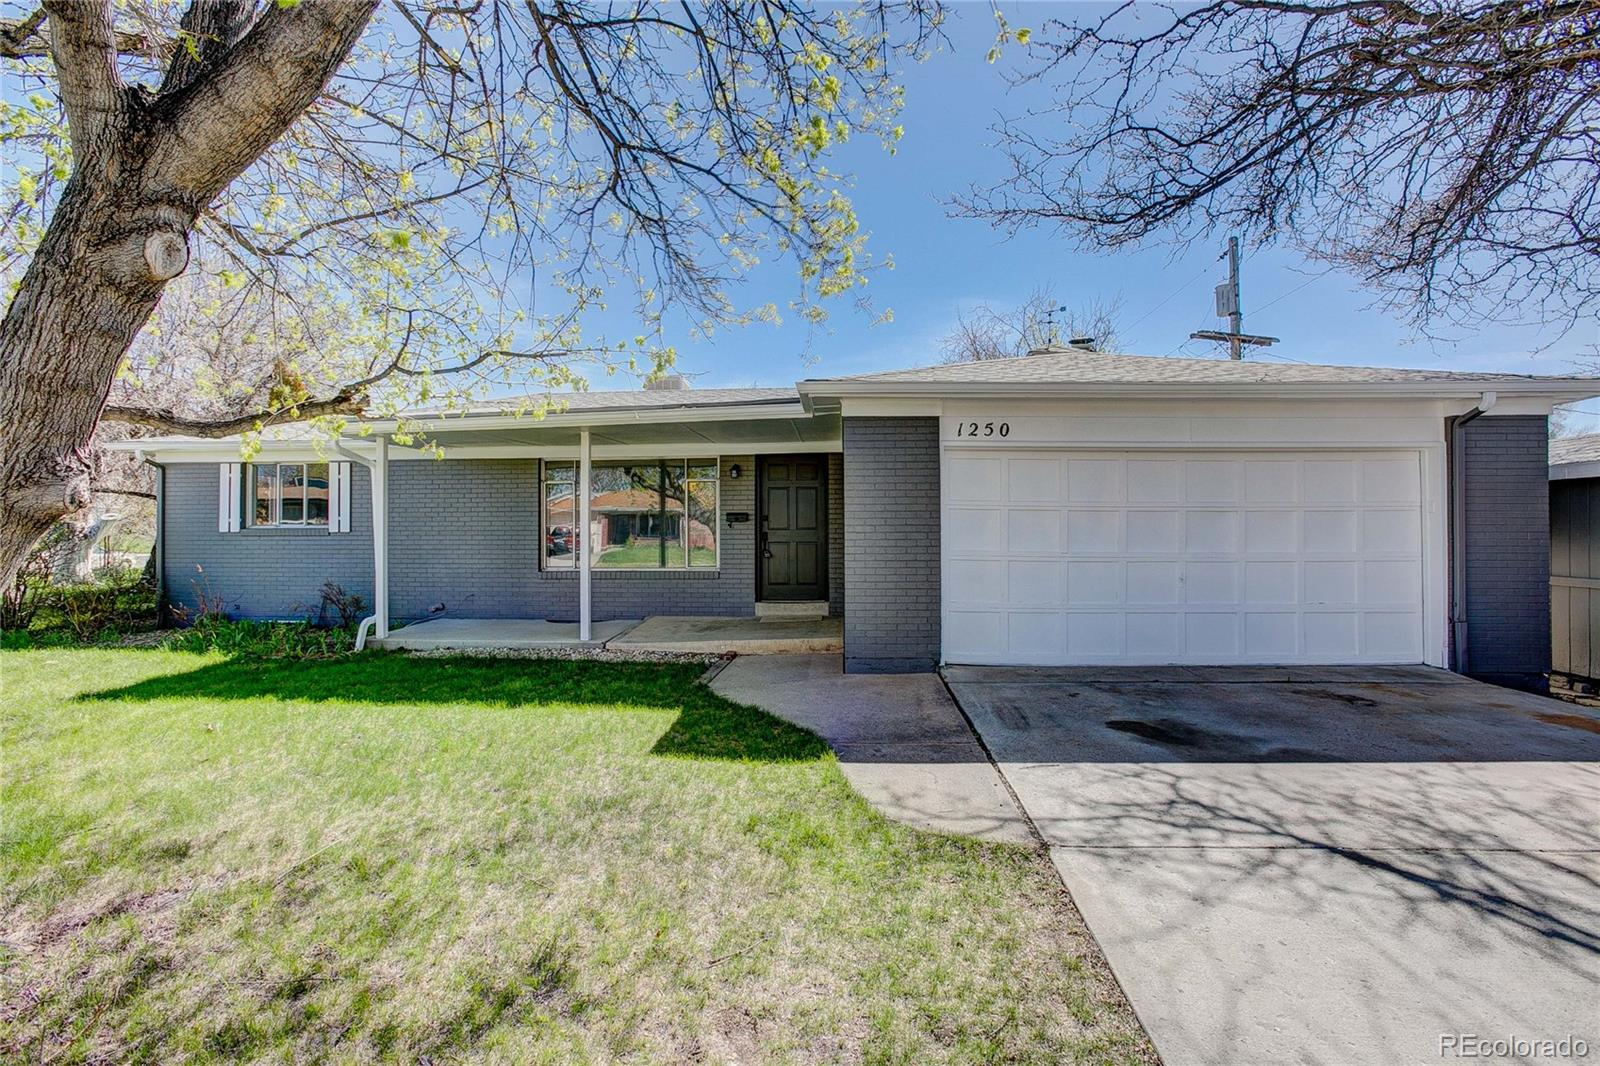 MLS# 9710462 - 31 - 1250 W 7th Ave Dr, Broomfield, CO 80020